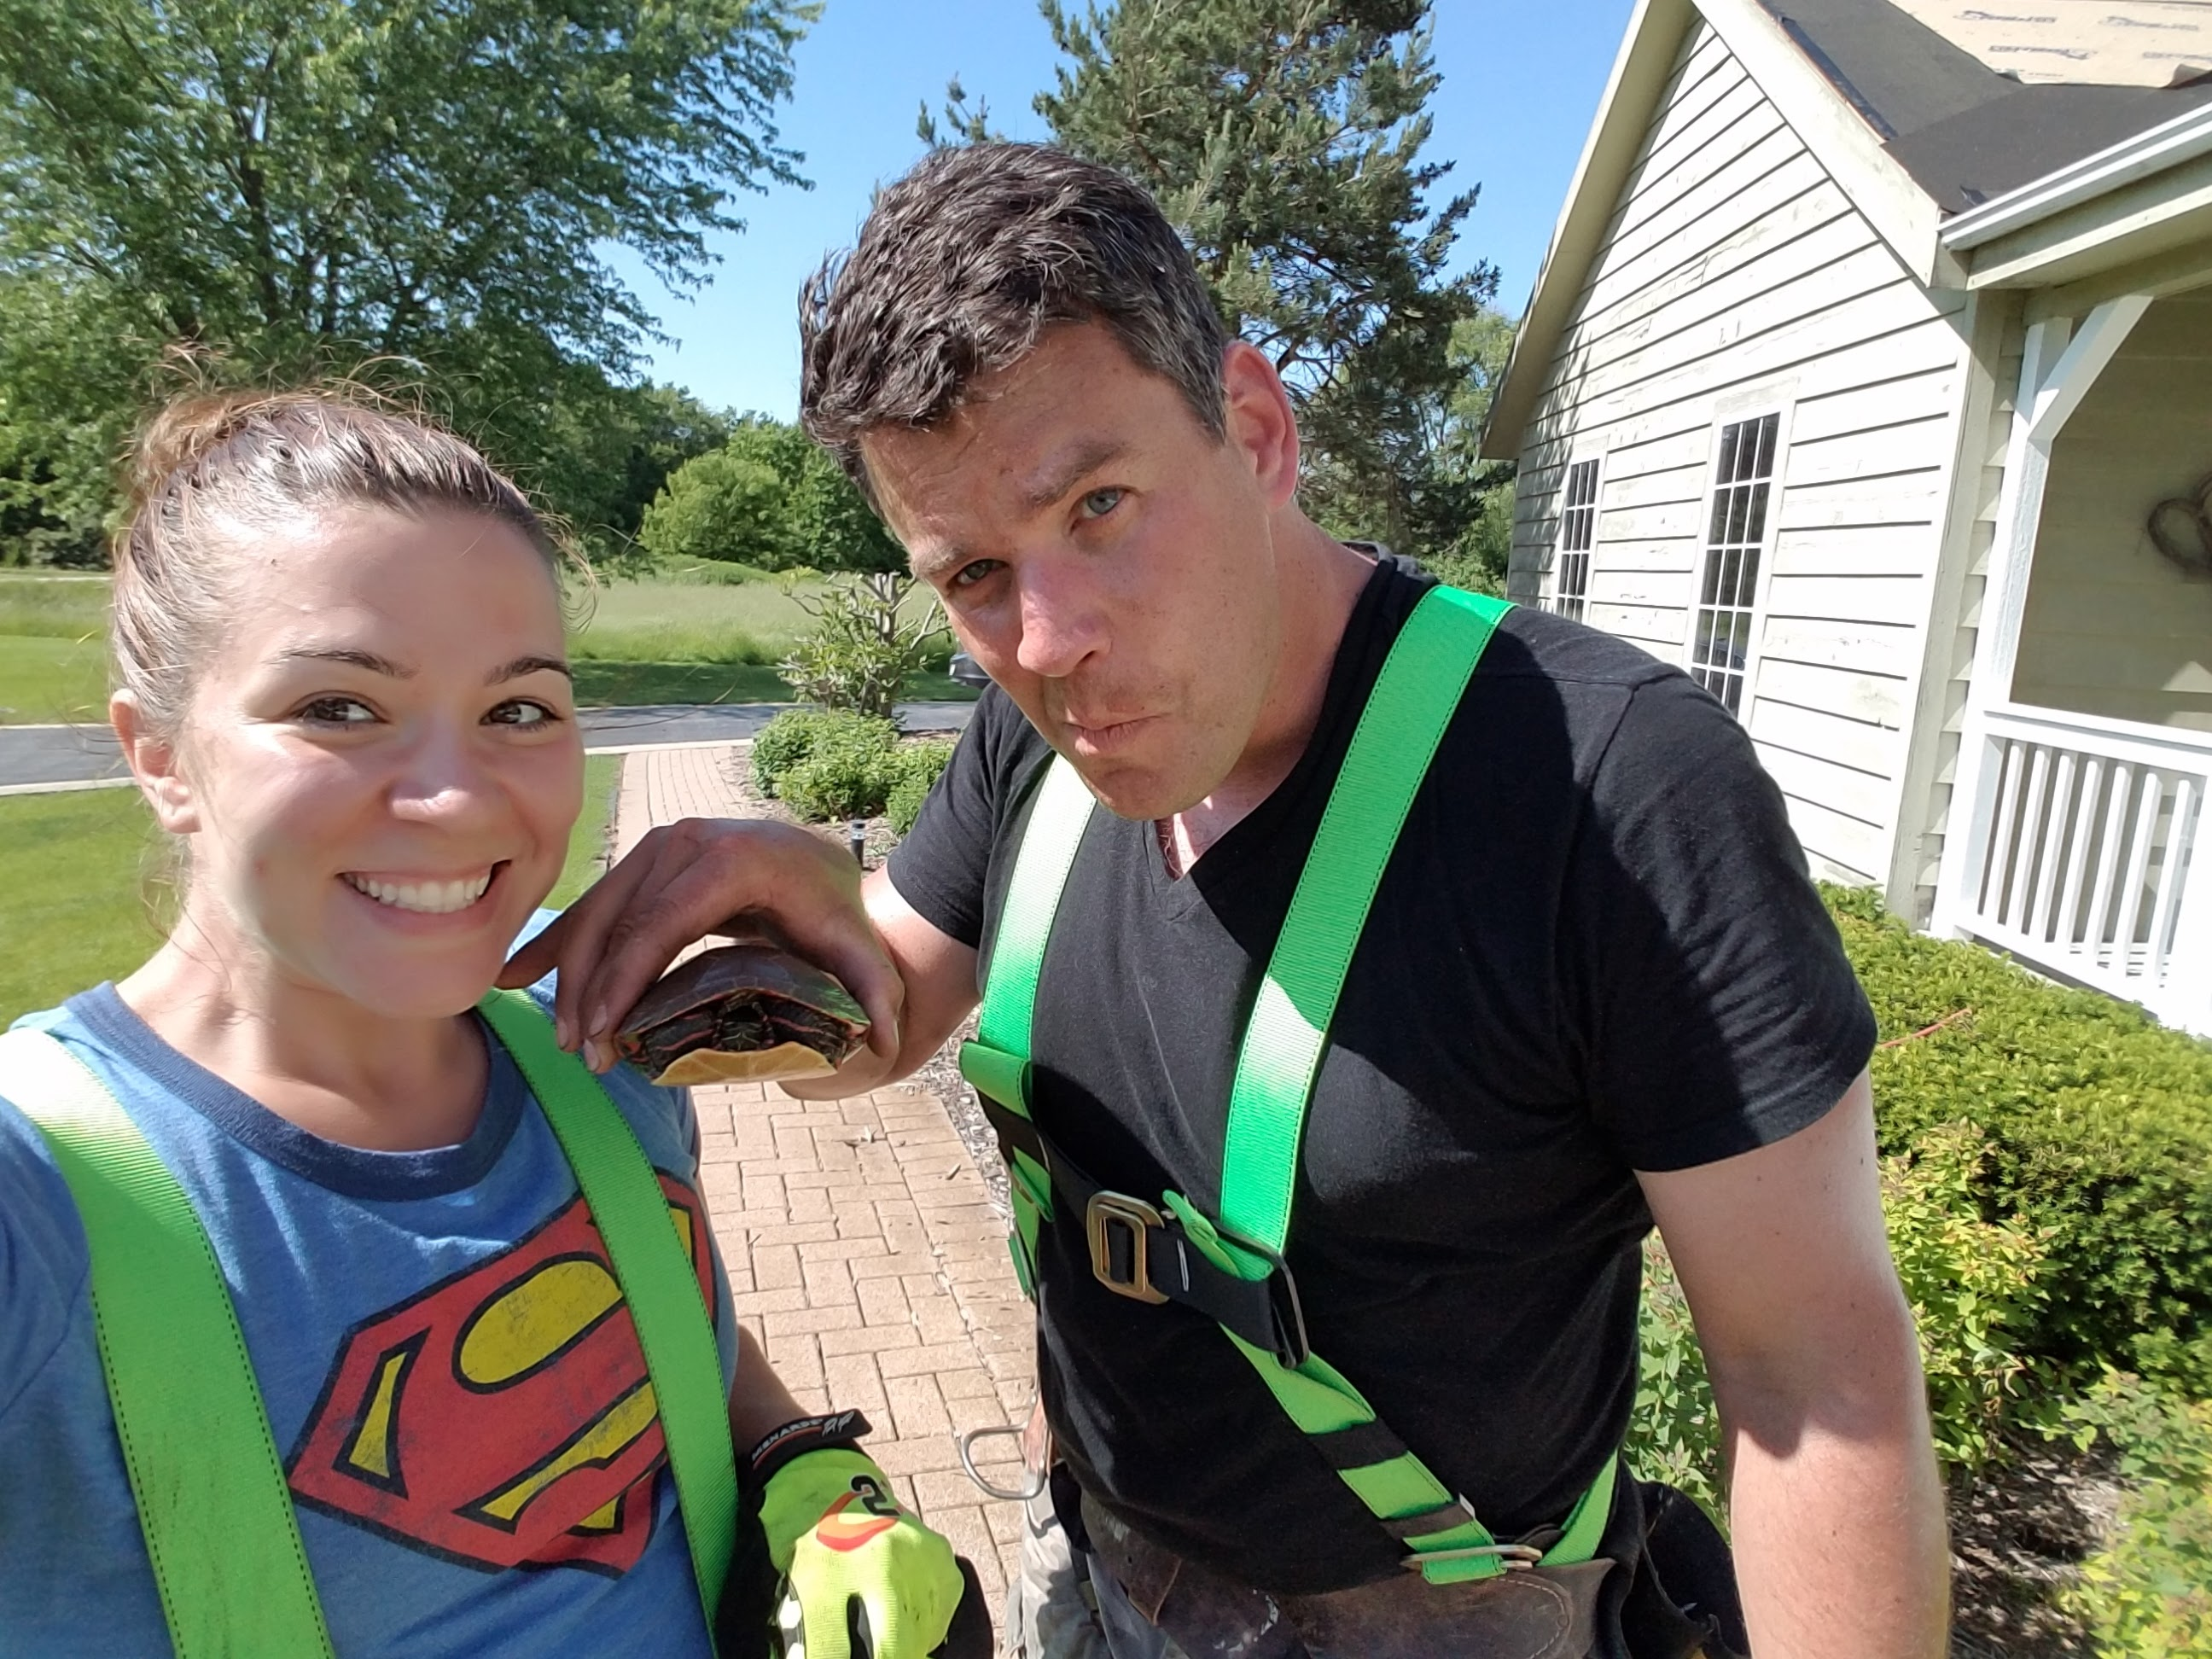 Cindy and Jeff found a turtle while working on the roof